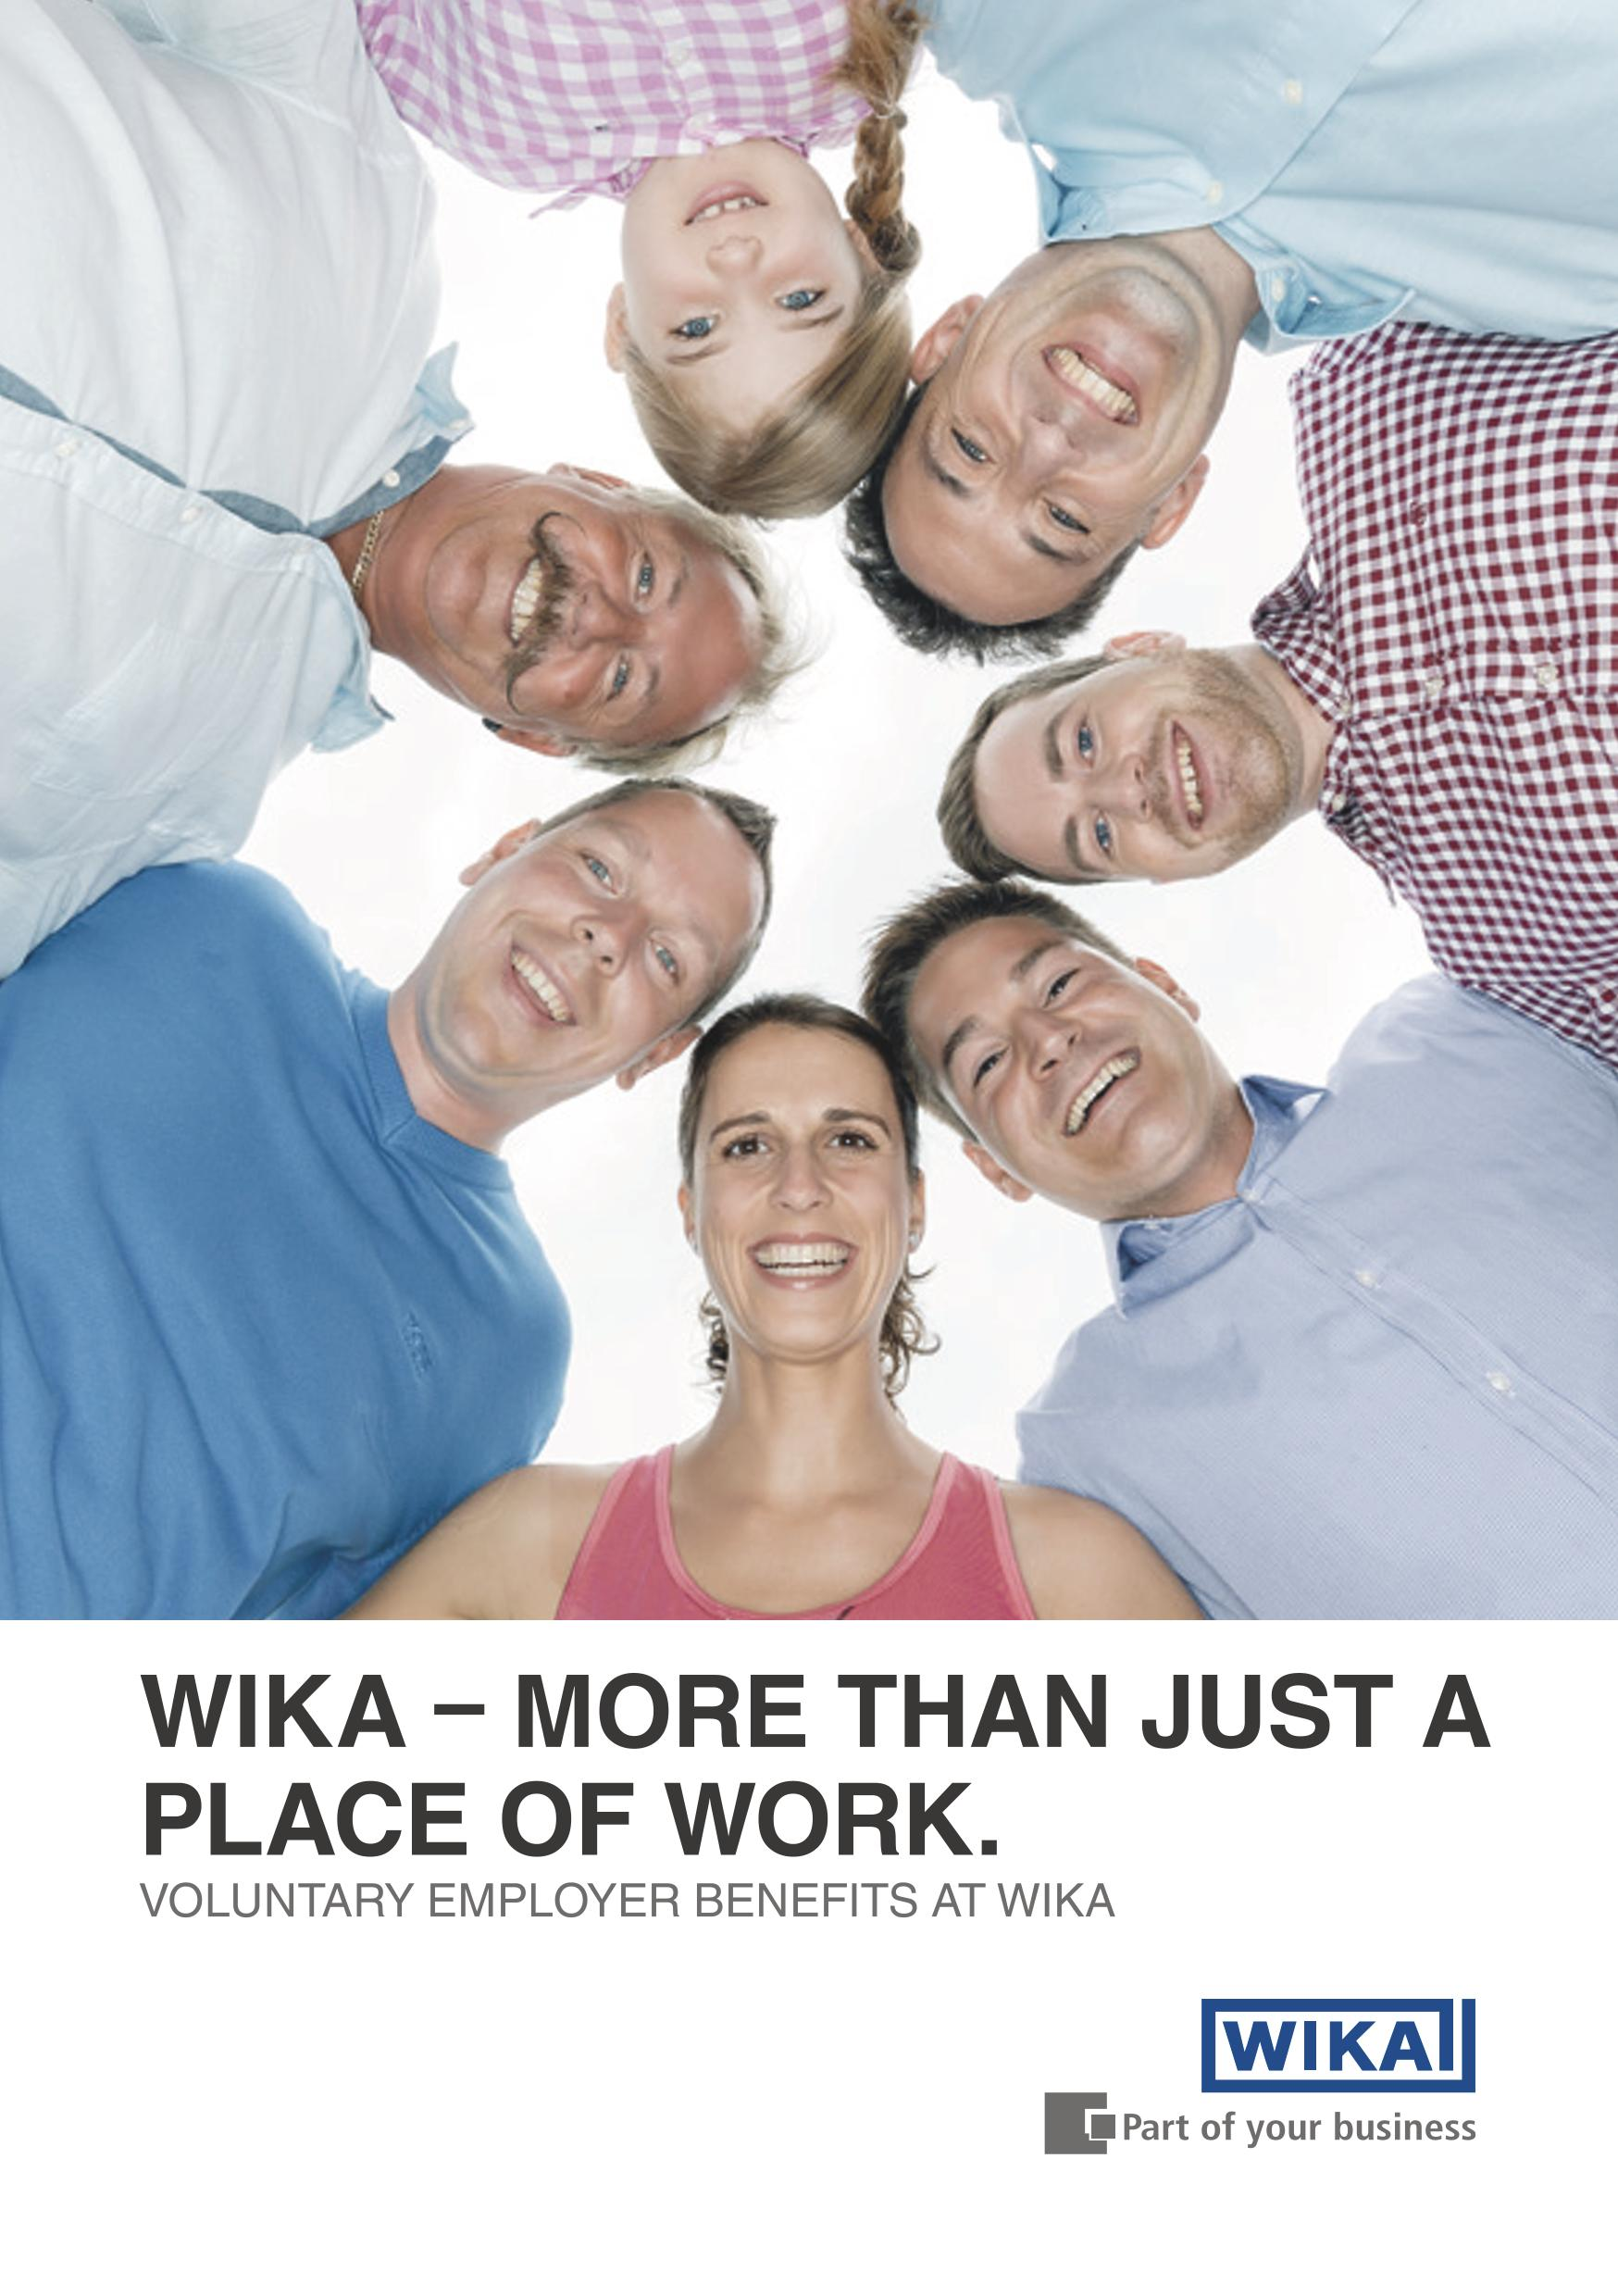 Voluntary employer benefits at WIKA